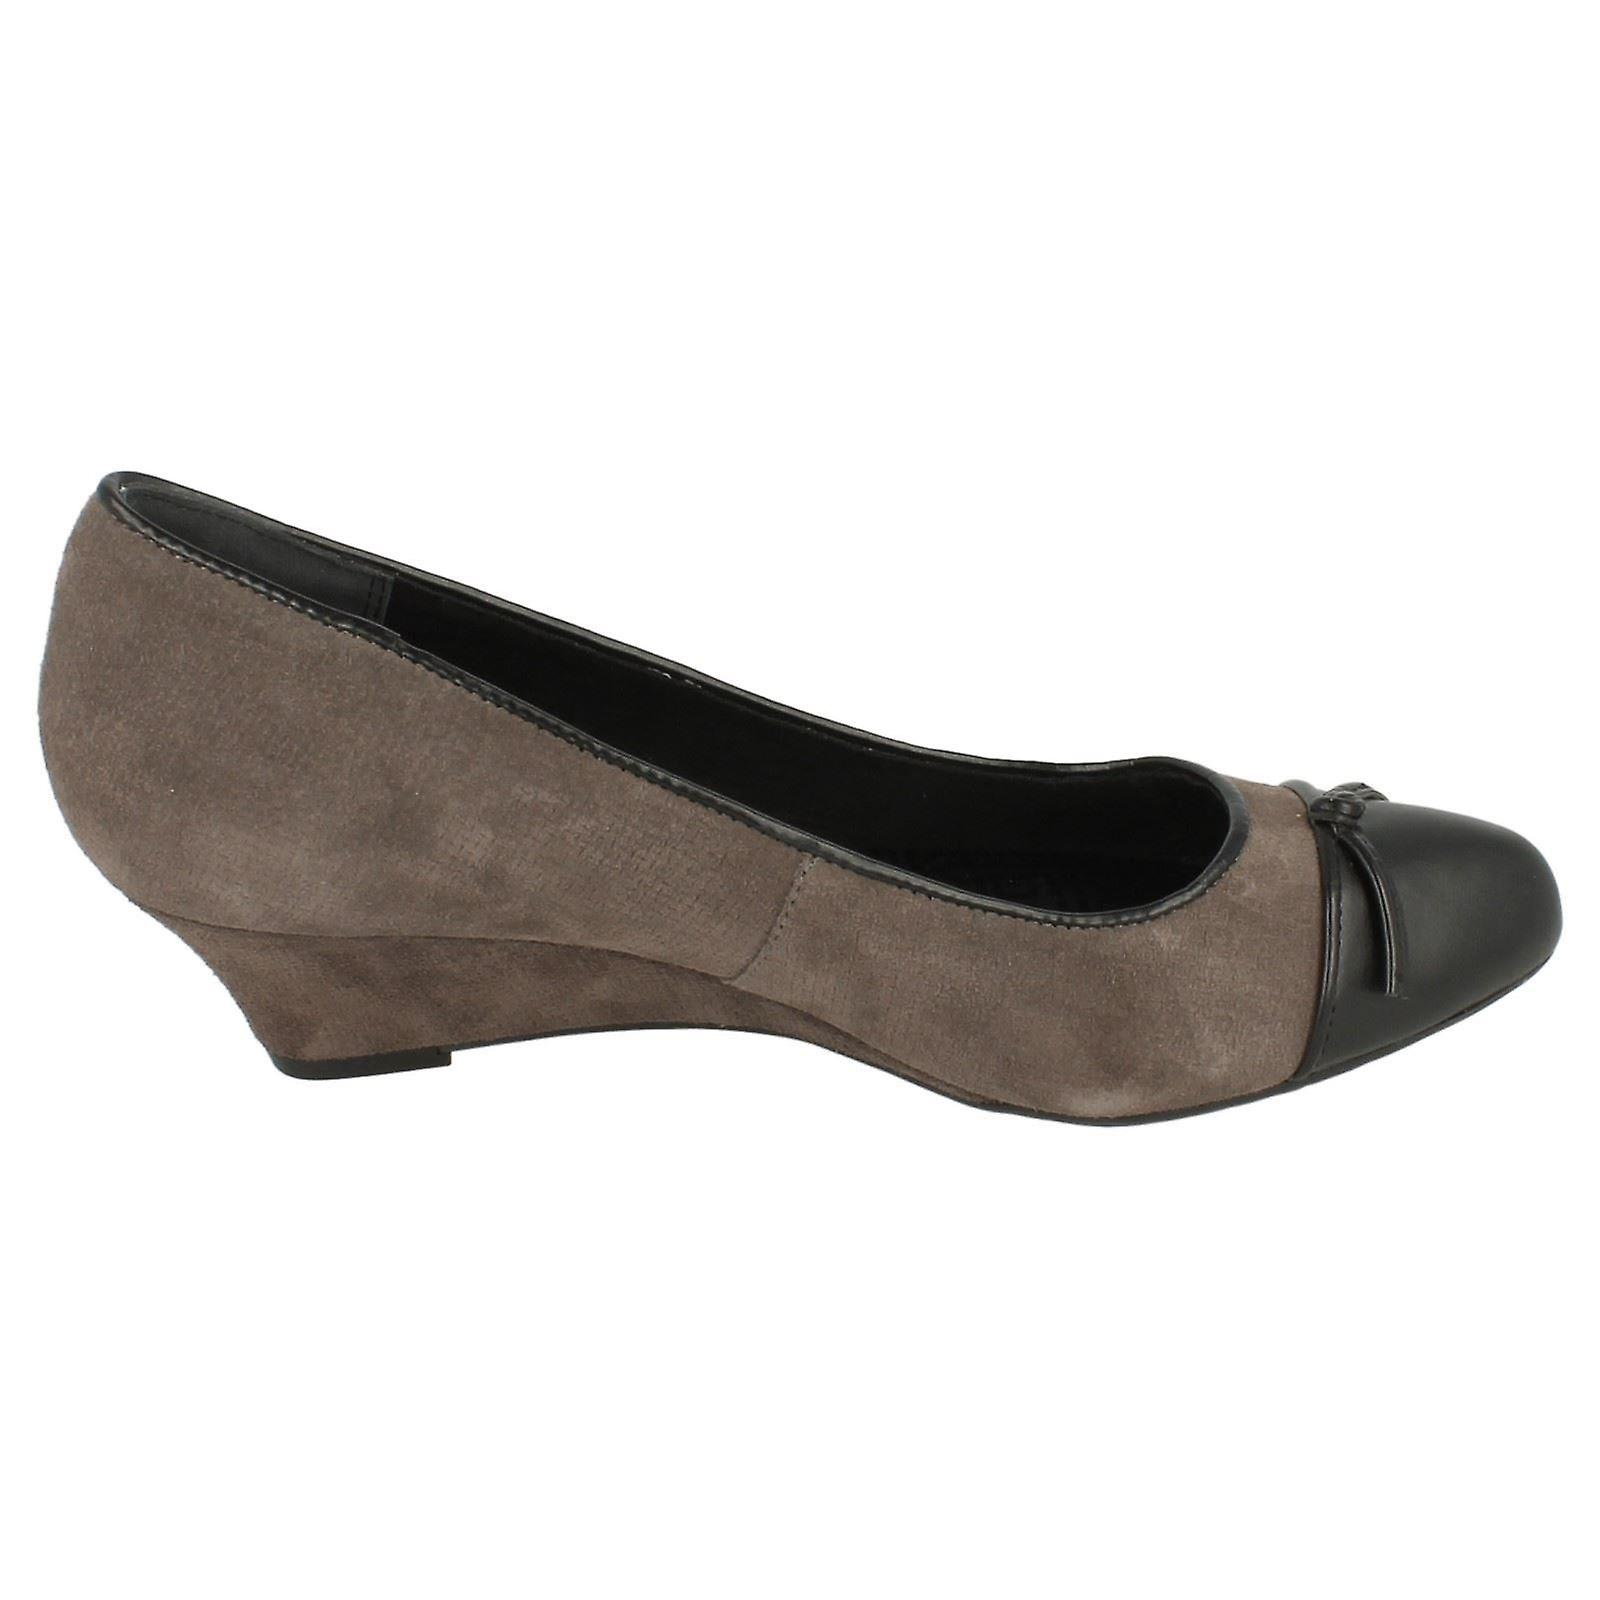 Dame Rockport Smart Casual kilet Ballerina - størrelse 3,5